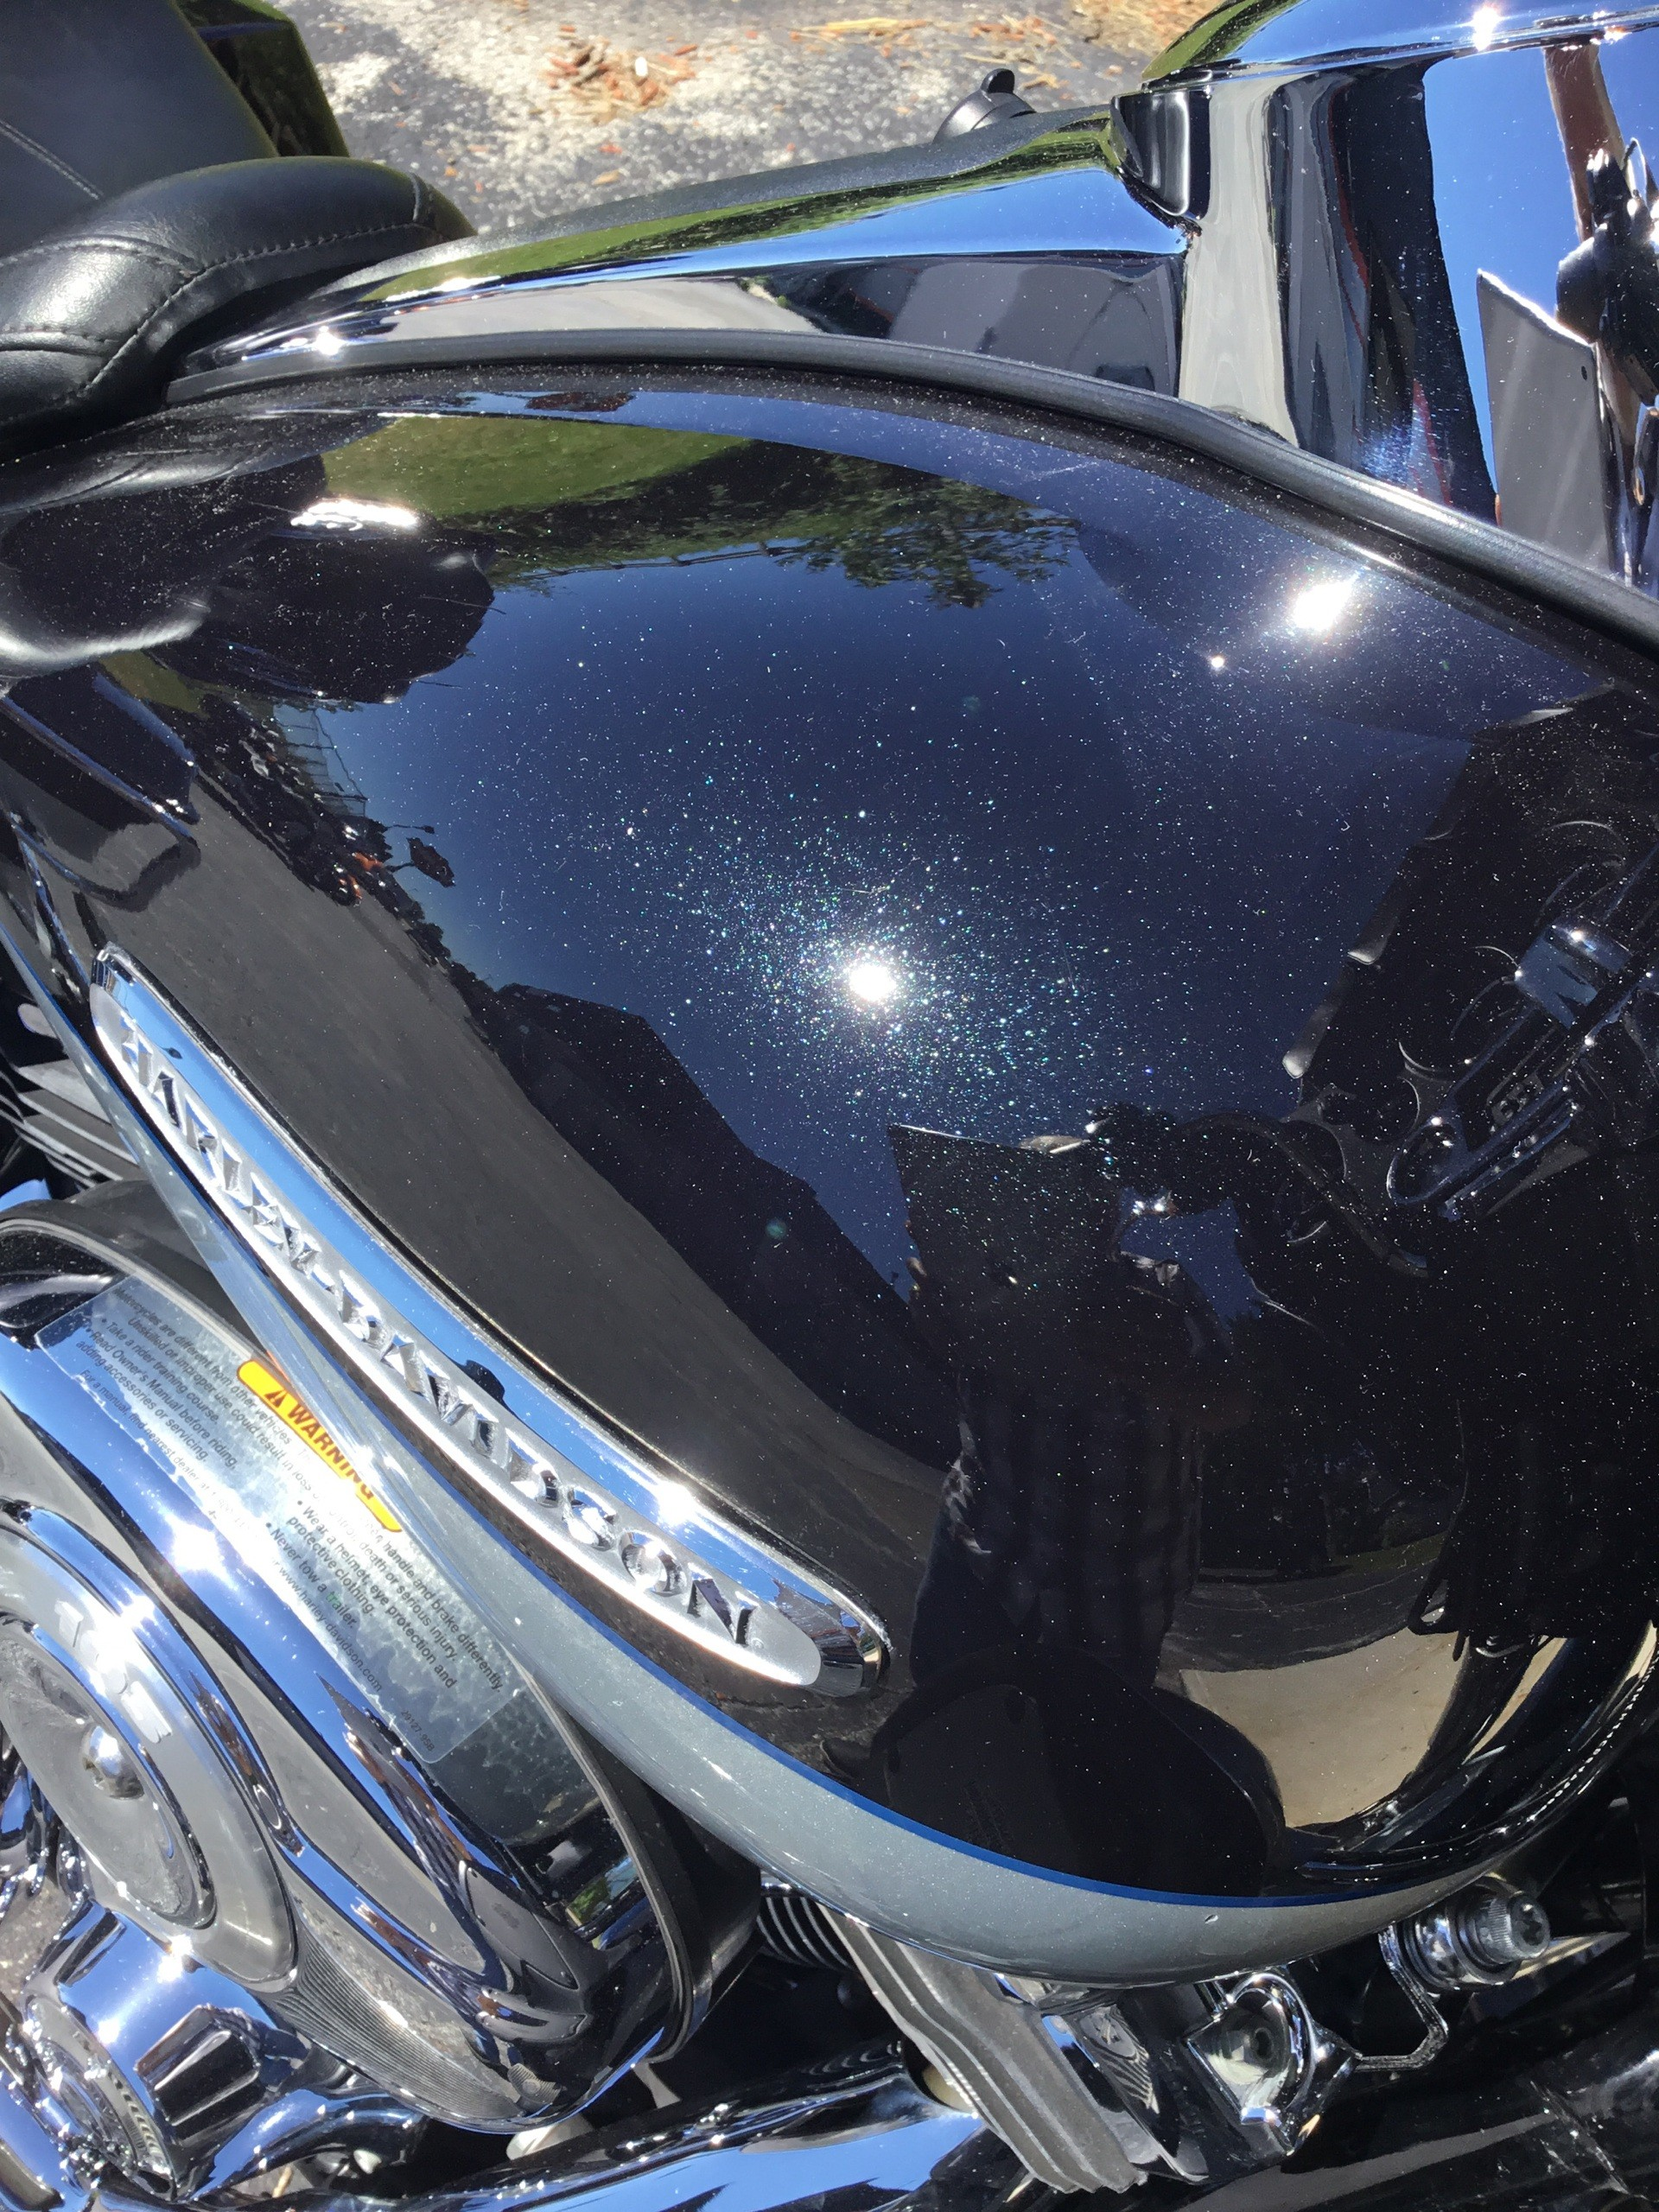 2012 Harley-Davidson Electra Glide® Ultra Limited in Sheboygan, Wisconsin - Photo 4